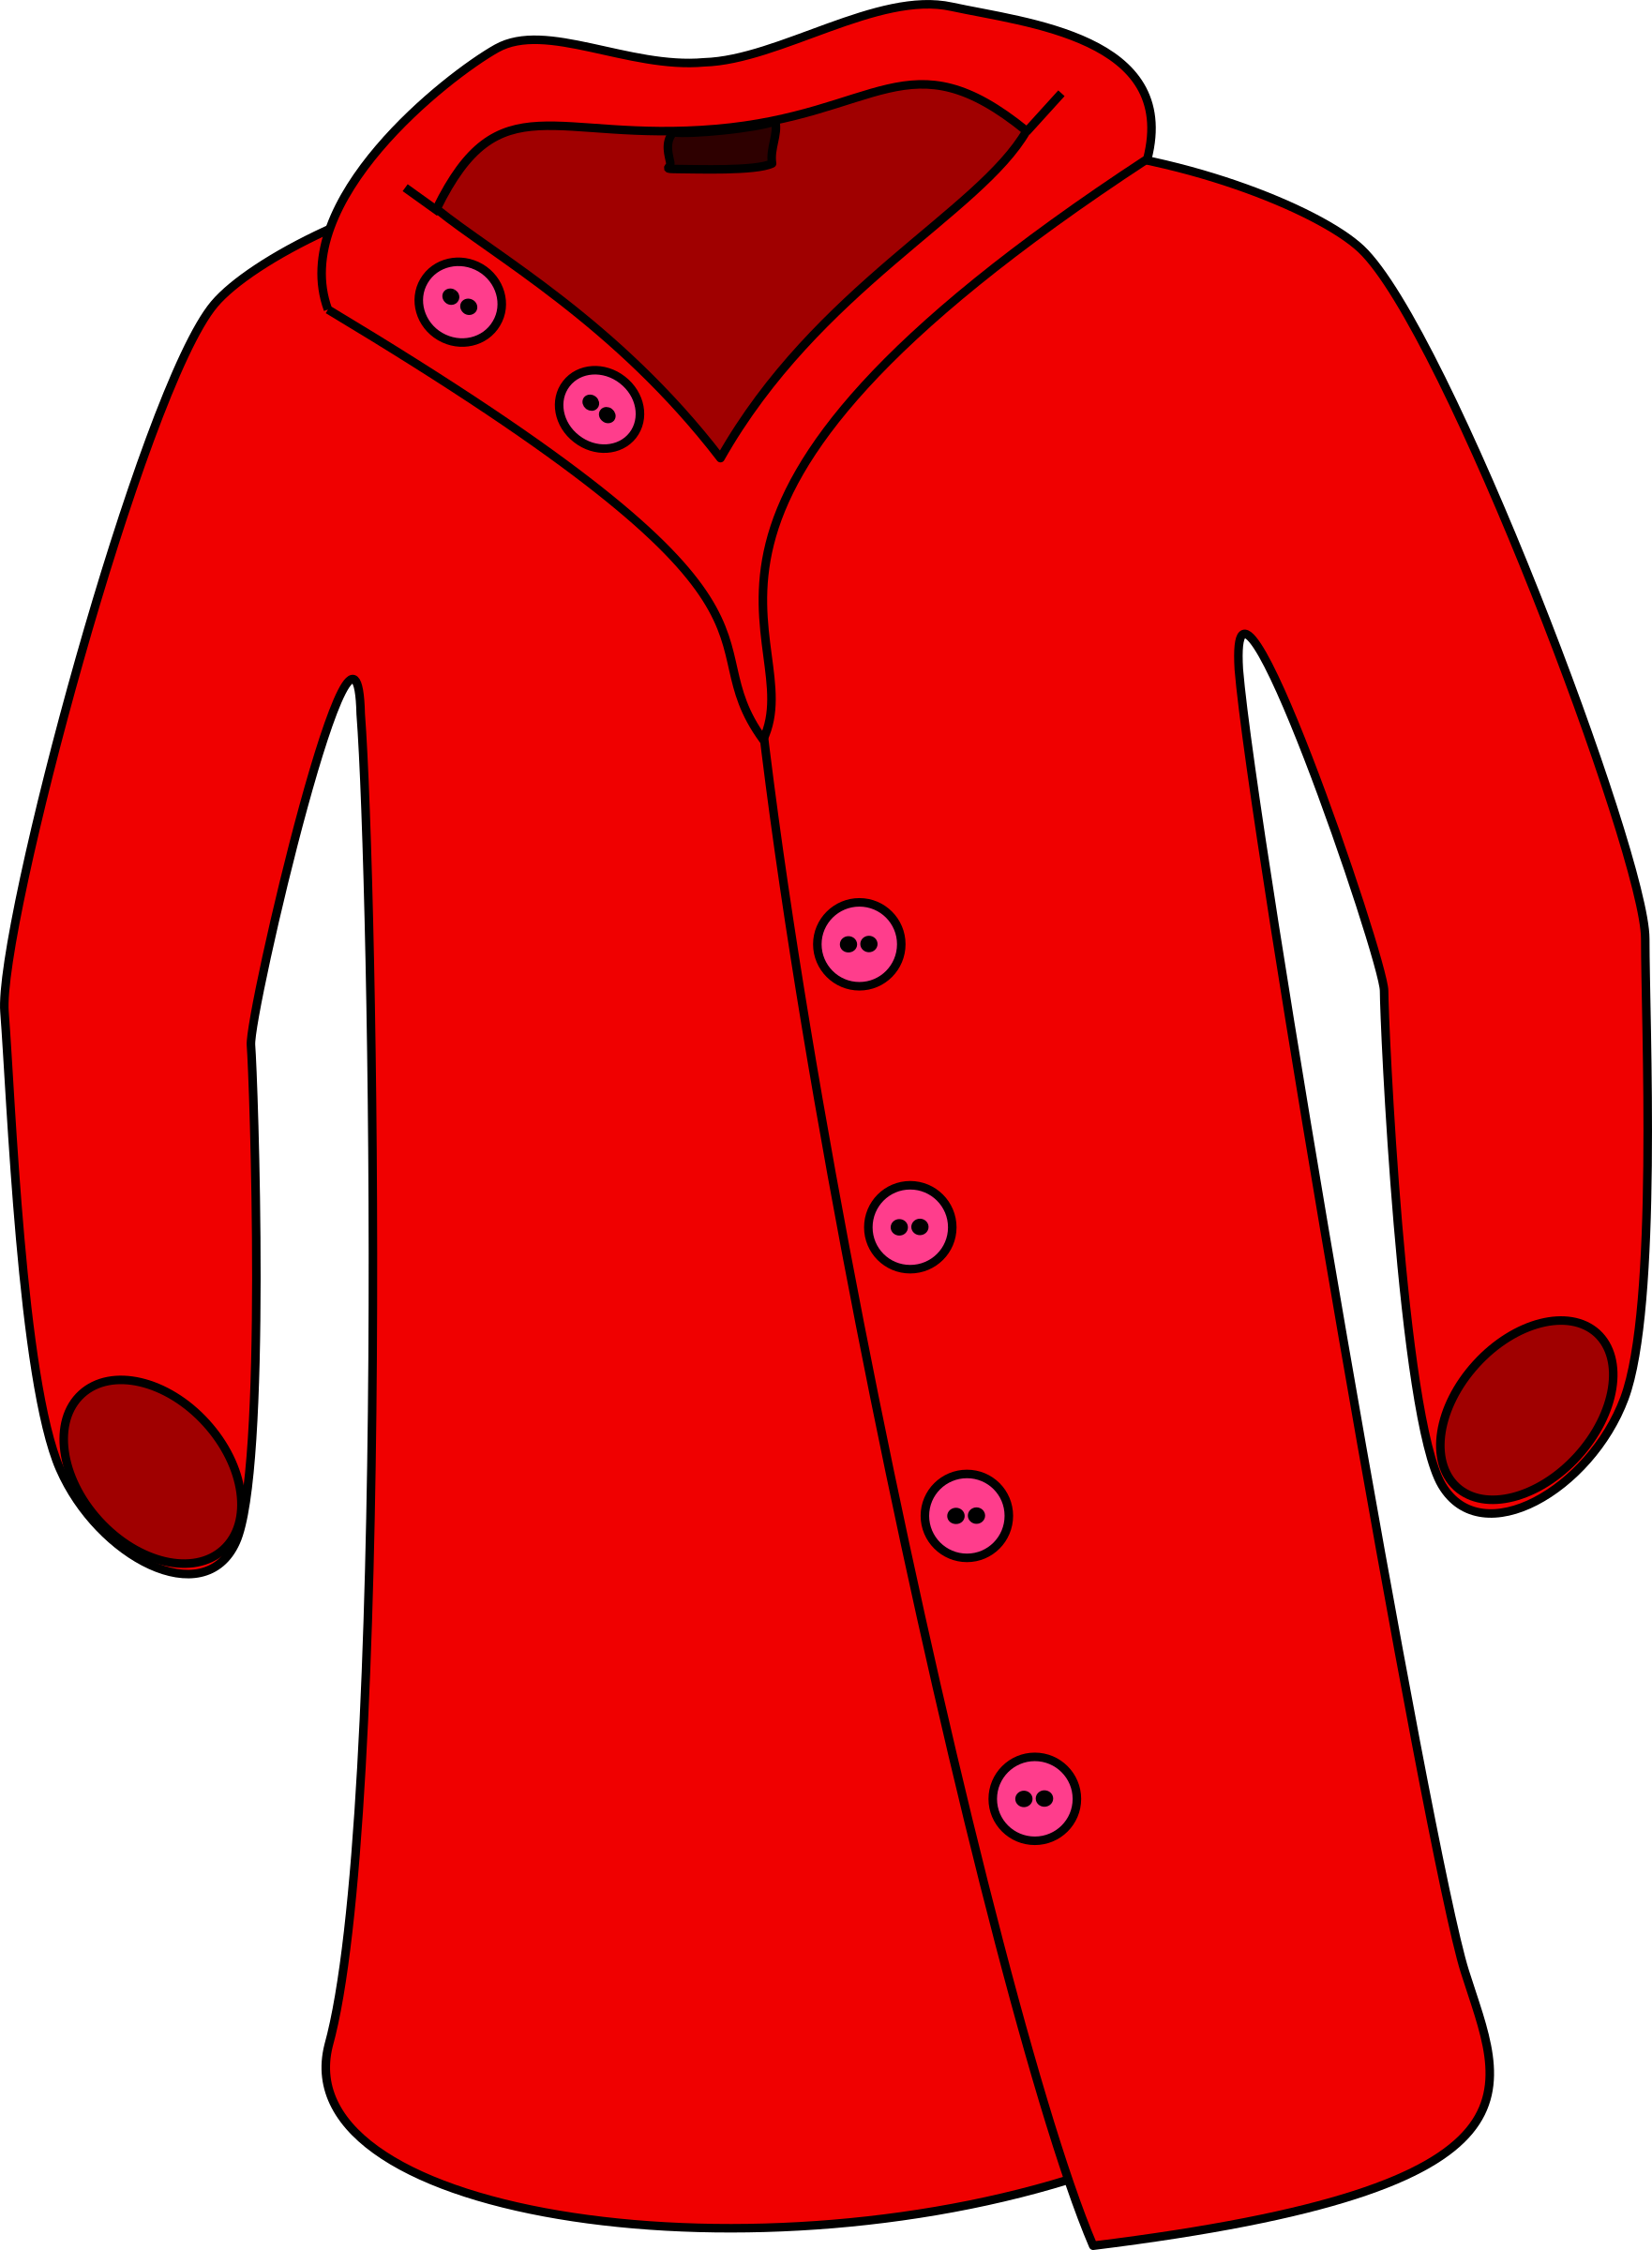 Hoodie clipart winter sweater.  collection of jacket